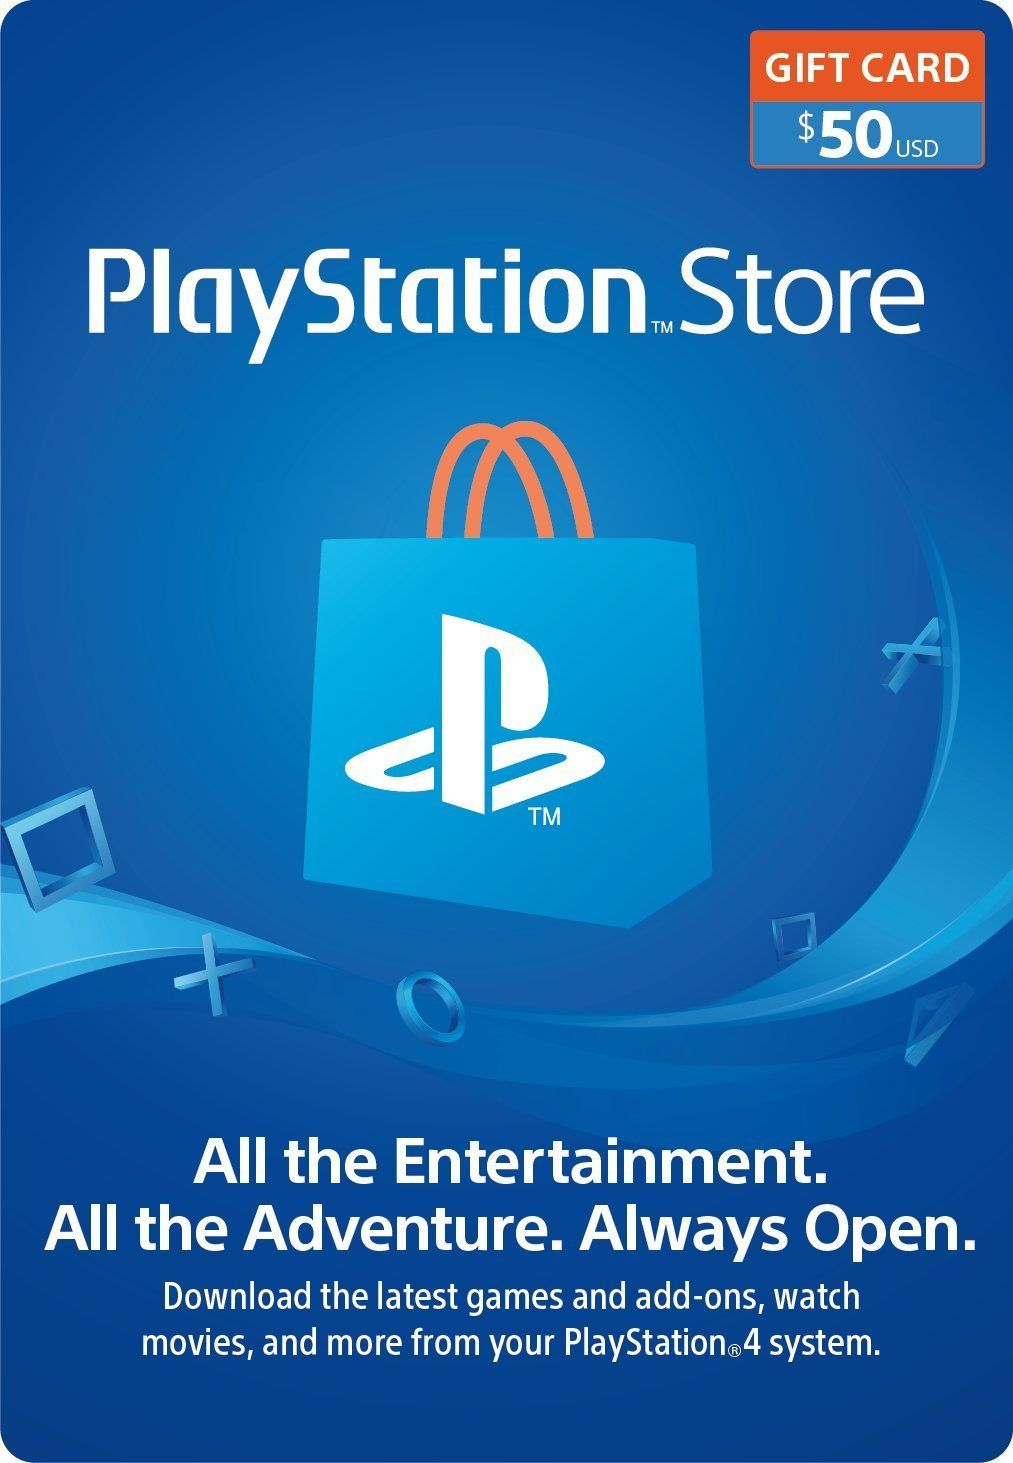 Great Gift 50 Playstation Store Gift Card Ps3 Ps4 Ps Vita Digital Code Video Games Giftcard Playstation Store Gift Cards Computer Video Games